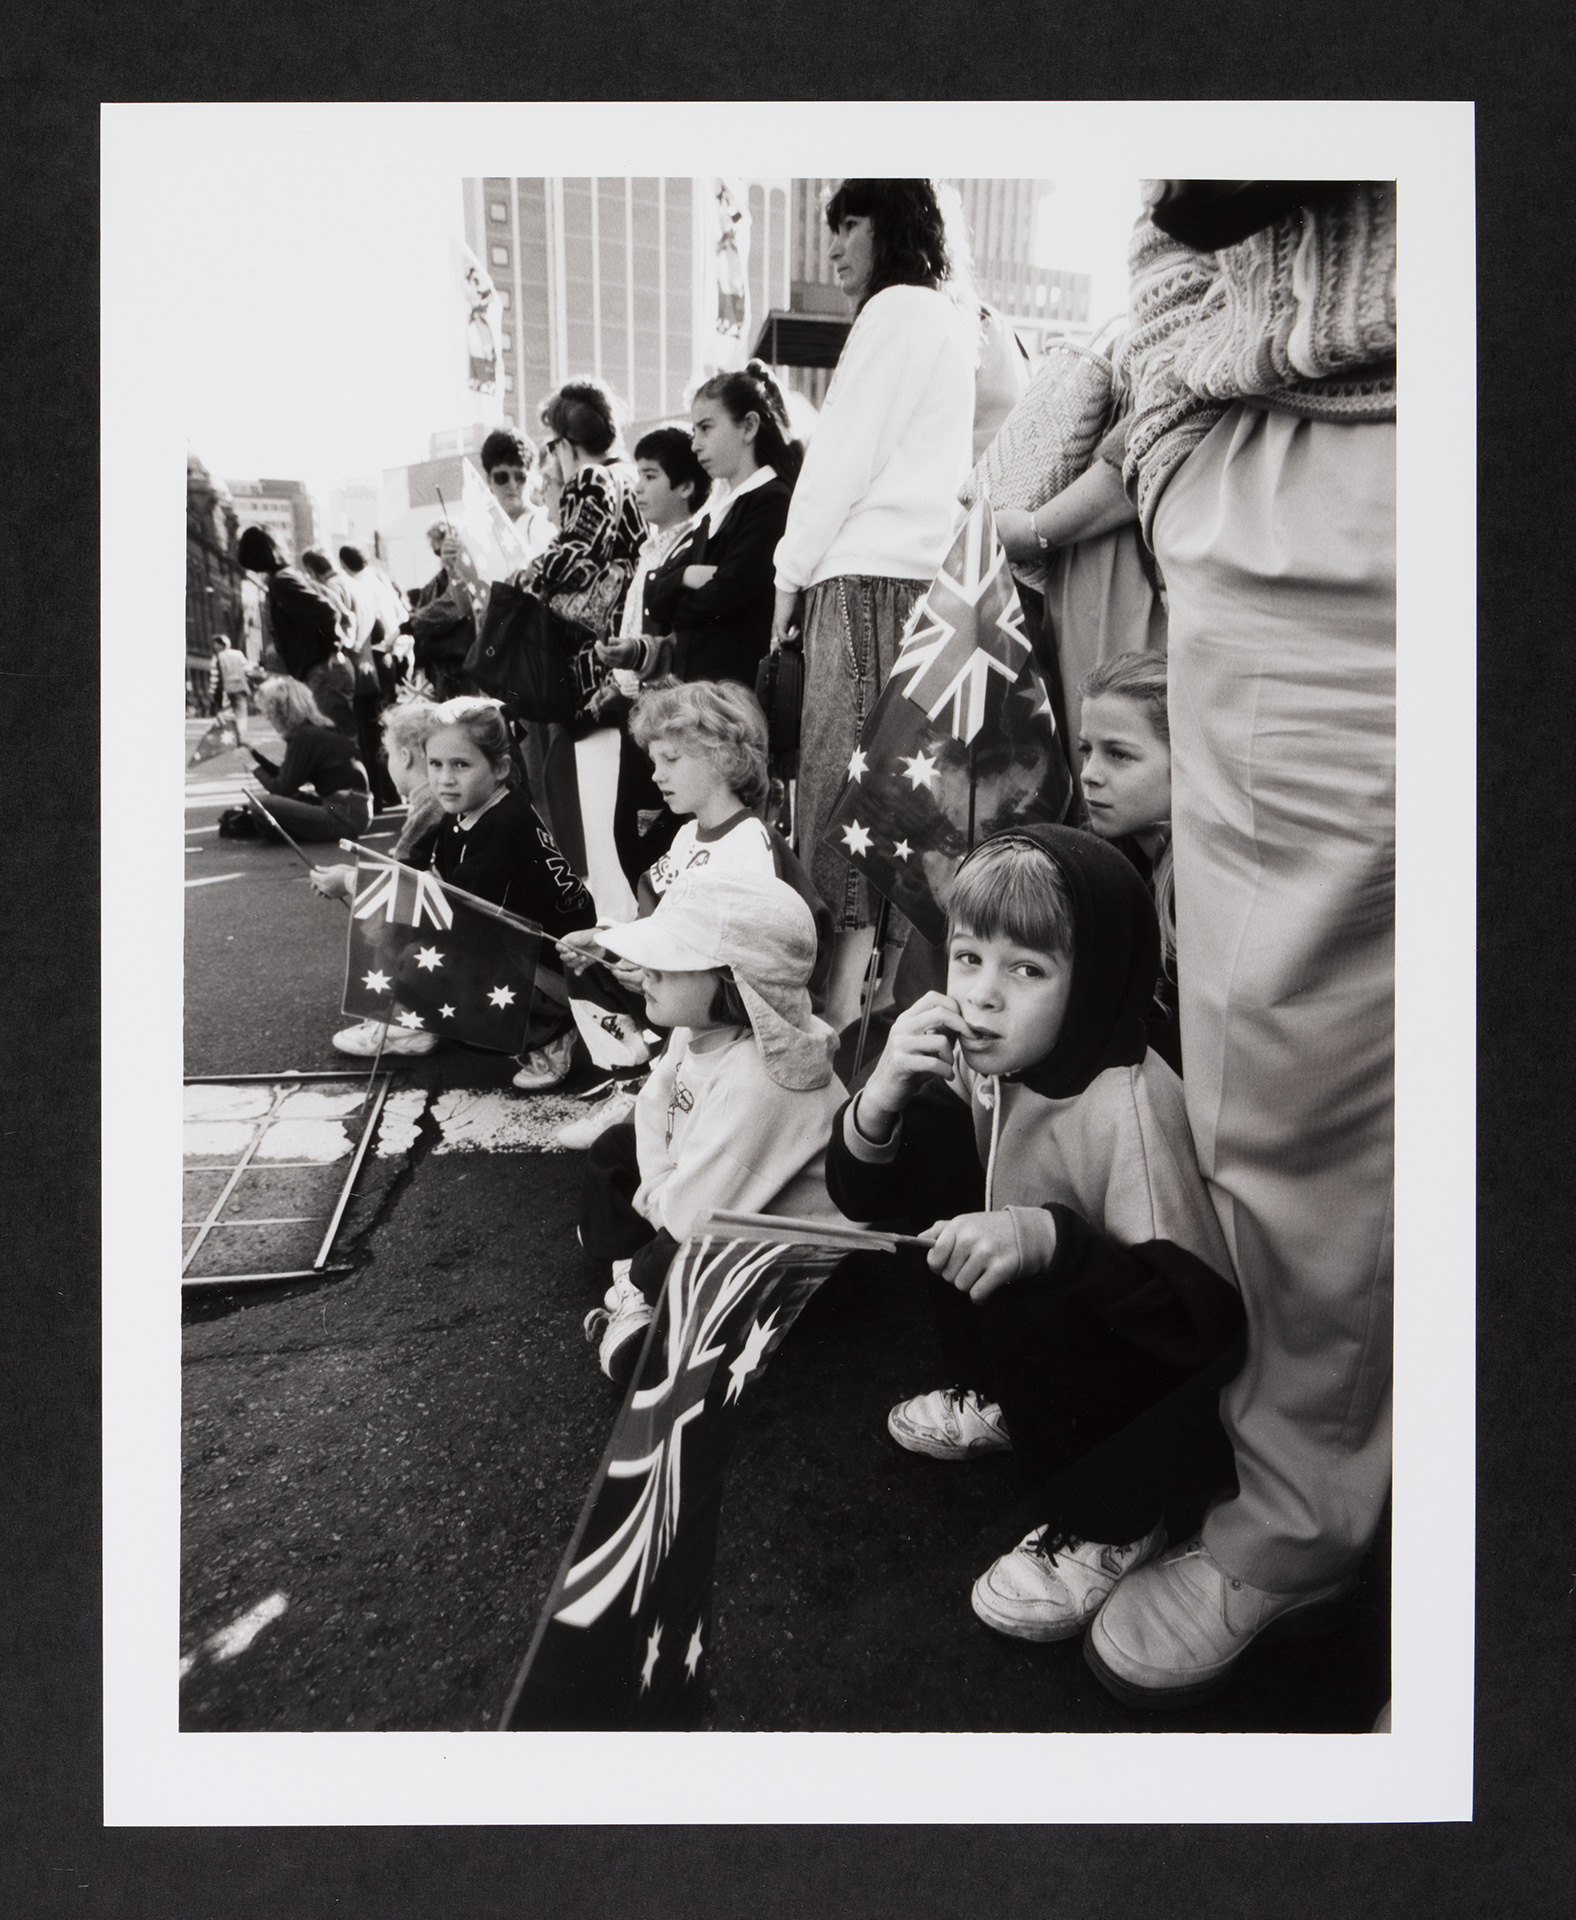 Bystanders, including children, at a parade, holding Australian flags.